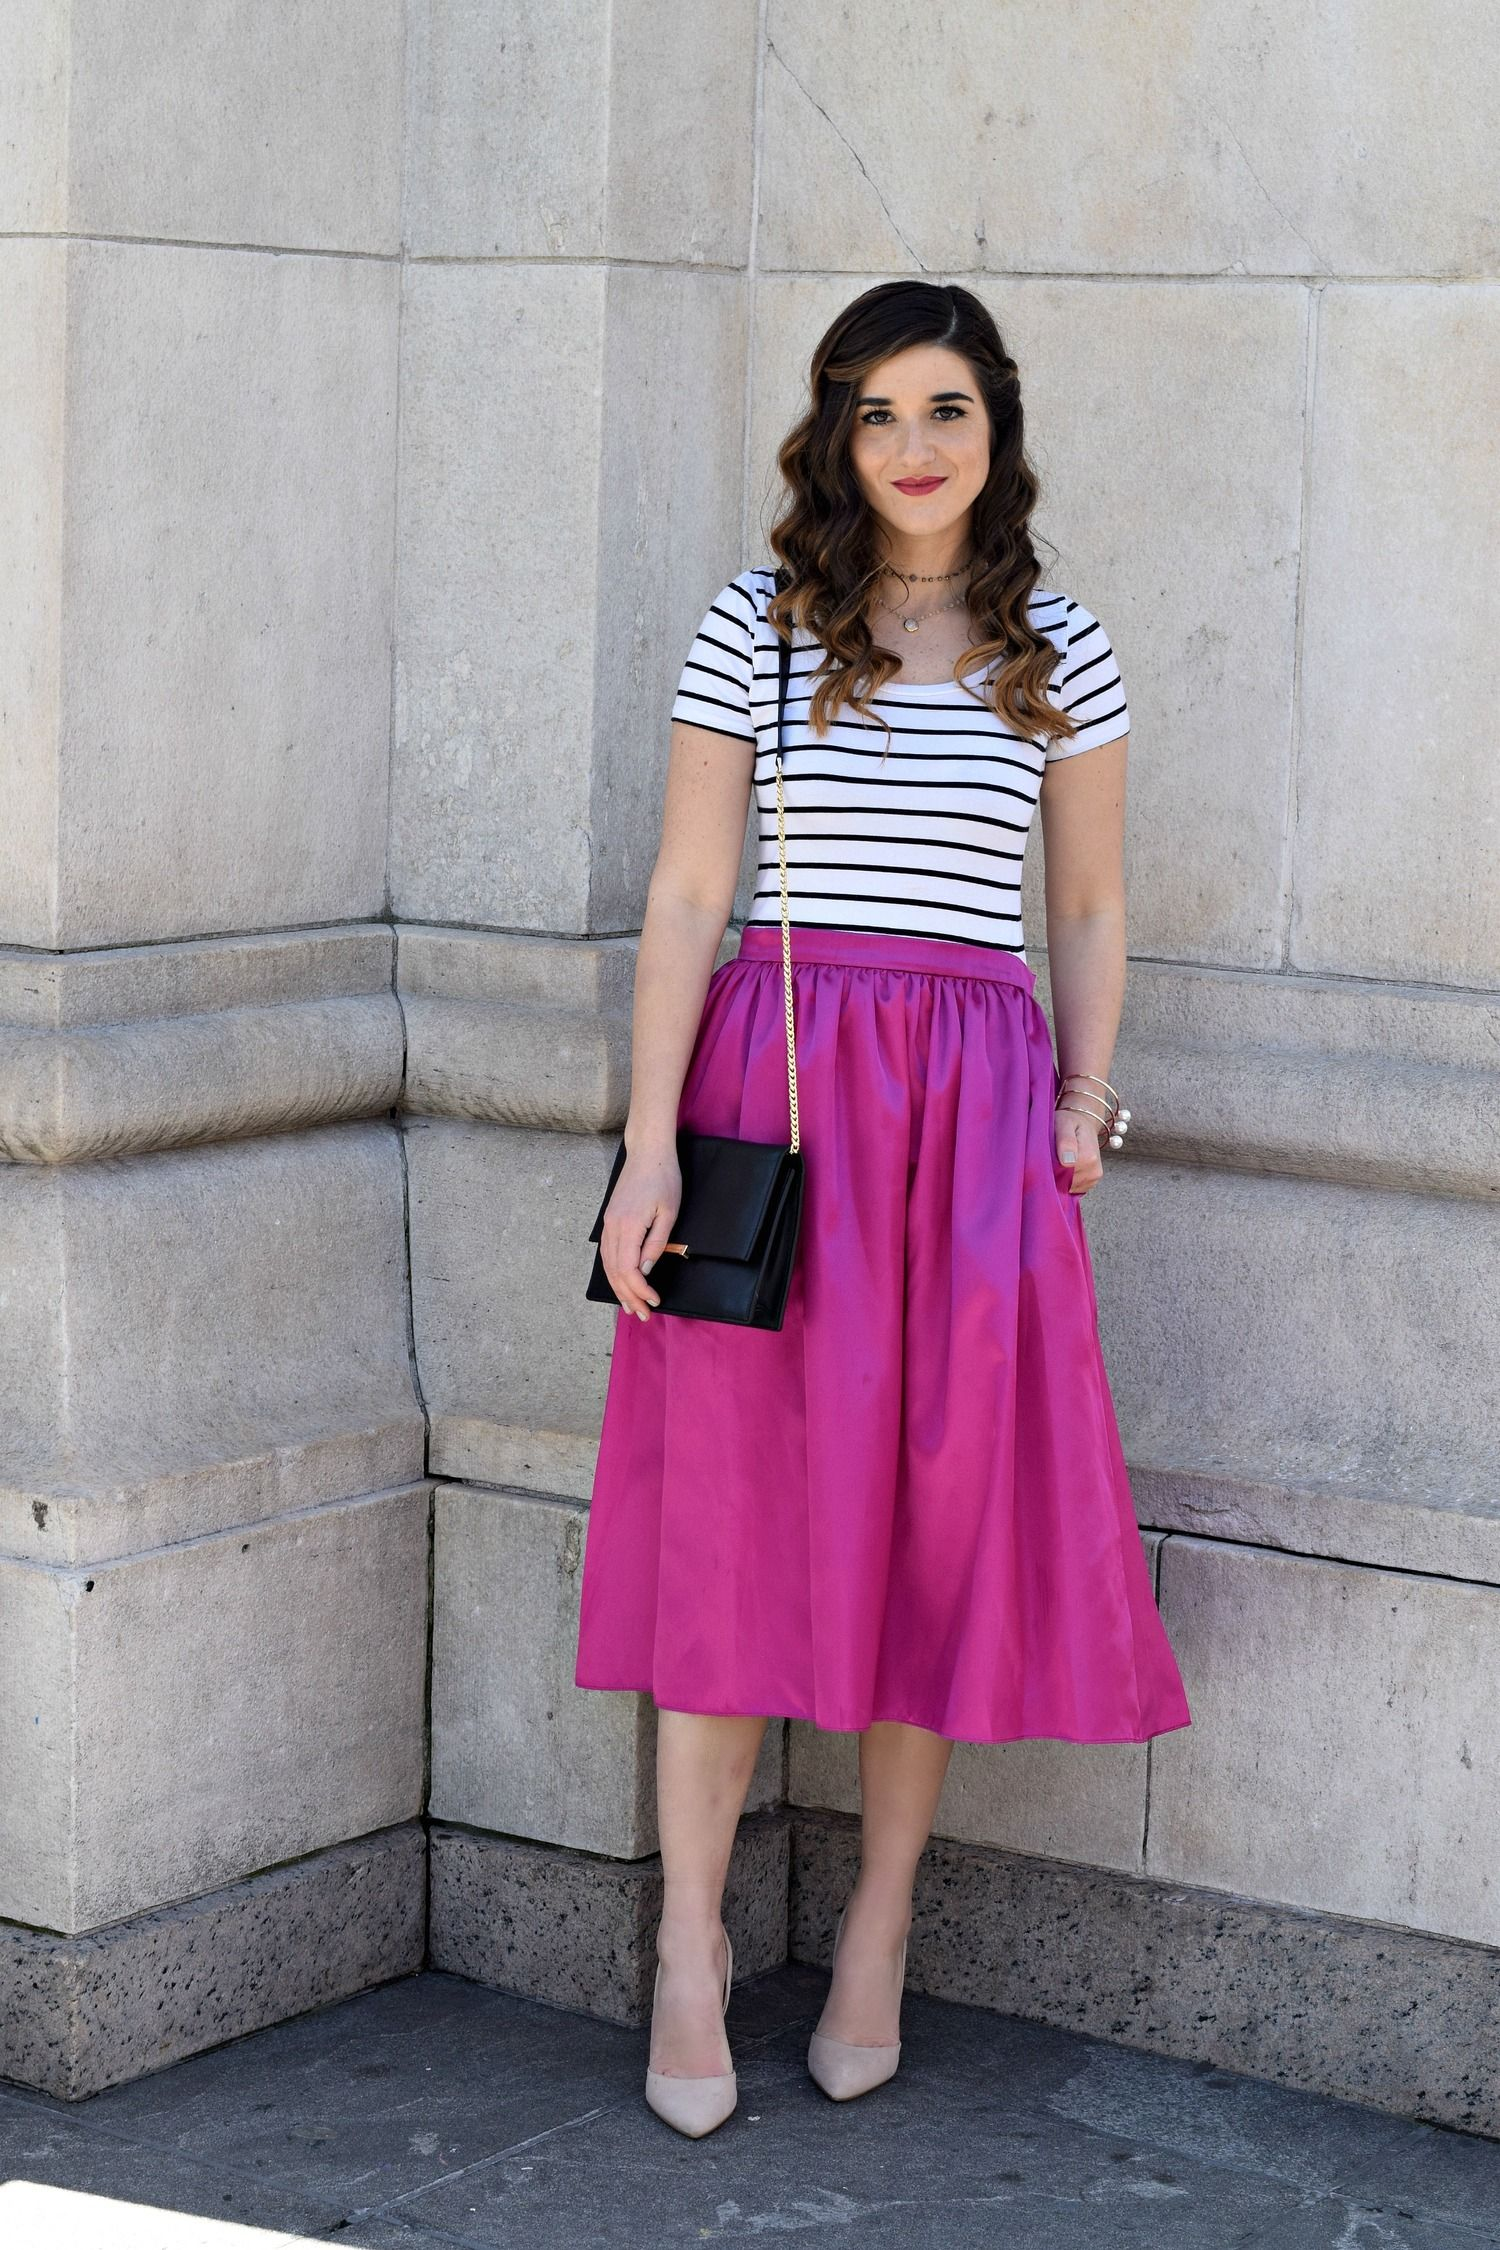 d705755b44 Fuchsia pink midi skirt with pockets available at Mode-sty #nolayering